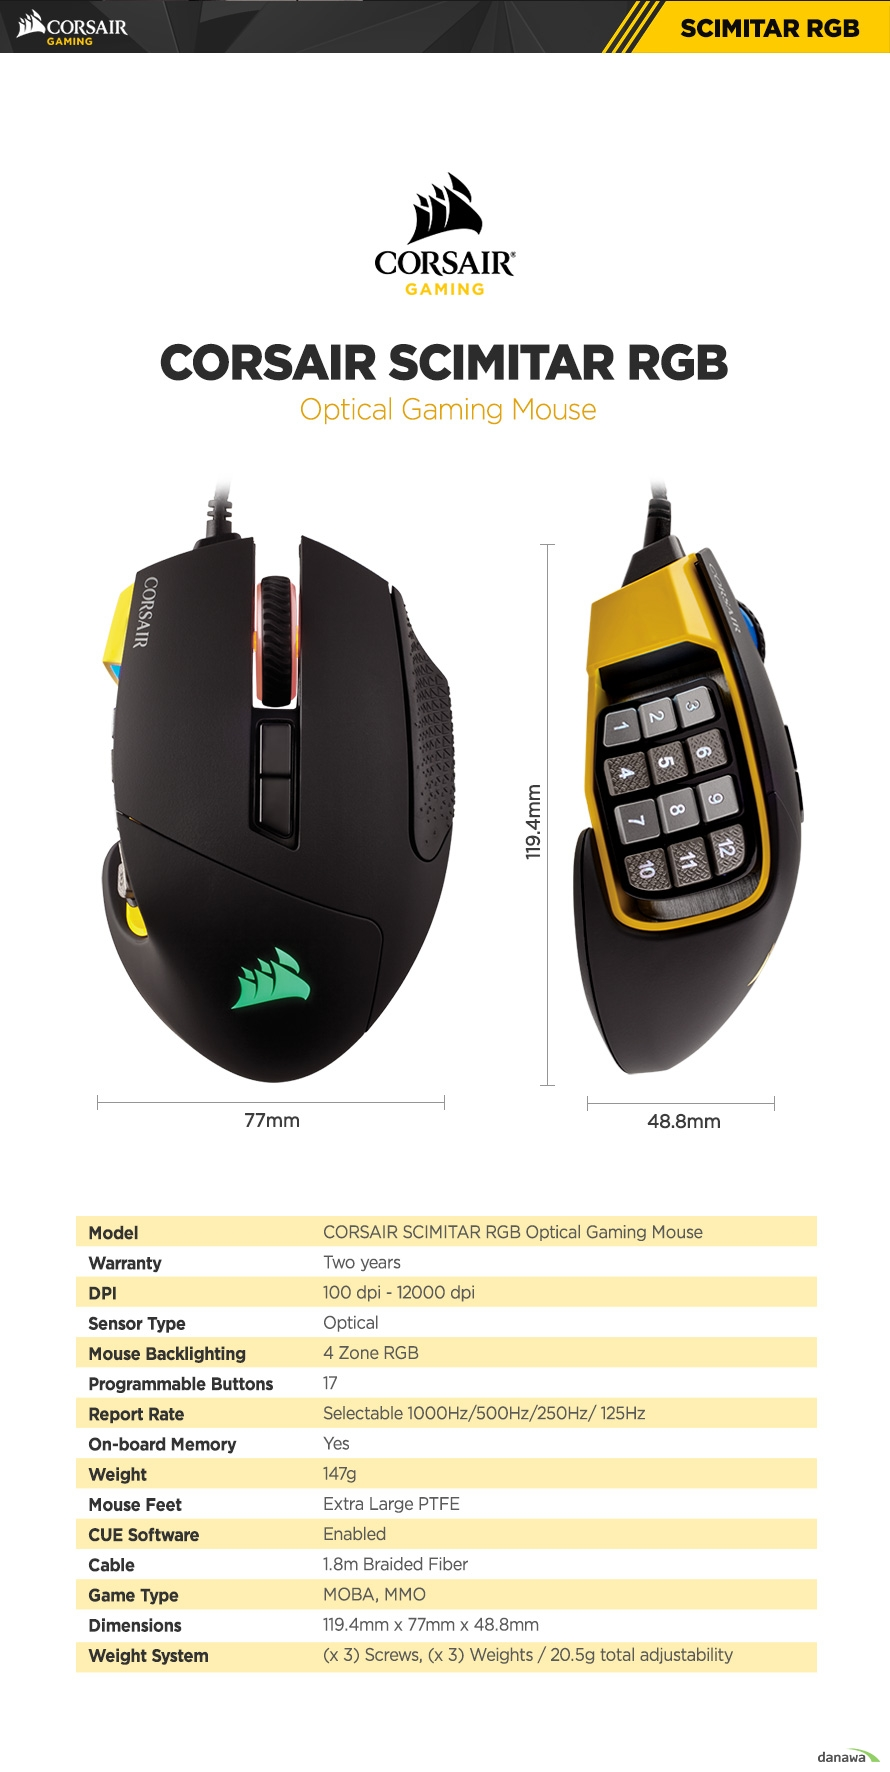 corsair SCIMITAR RGB OPTICAL gaming mouse Warranty Two years DPI 100 dpi - 12000 dpi Sensor Type Optical Mouse Backlighting 4 Zone RGB Programmable Buttons 17 Report Rate Selectable 1000Hz/500Hz/250Hz/125hz On-board Memory Yes Weight 147g Mouse Feet Extra Large PTFE CUE Software Enabled Cable 1.8m Braided Fiber Game Type moba mmo  Dimensions 119.4mm x 77mm x 48.8mm Weight System (x 3) Screws, (x 3) Weights 20.5g total adjustability